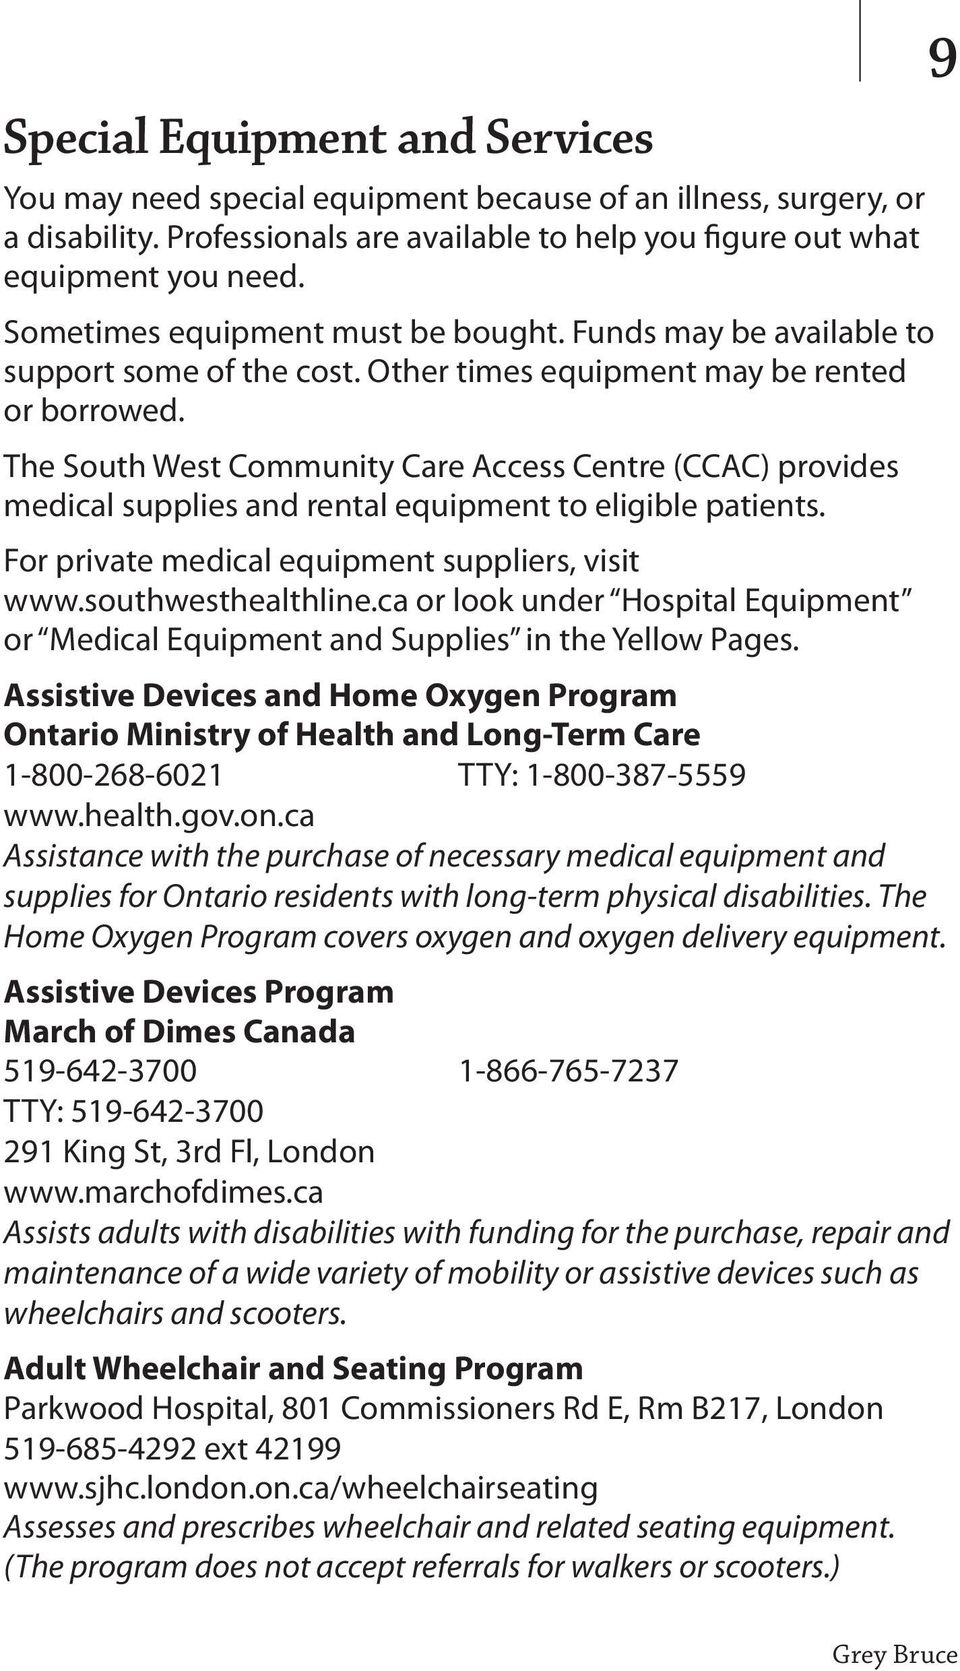 The South West Community Care Access Centre (CCAC) provides medical supplies and rental equipment to eligible patients. For private medical equipment suppliers, visit www.southwesthealthline.